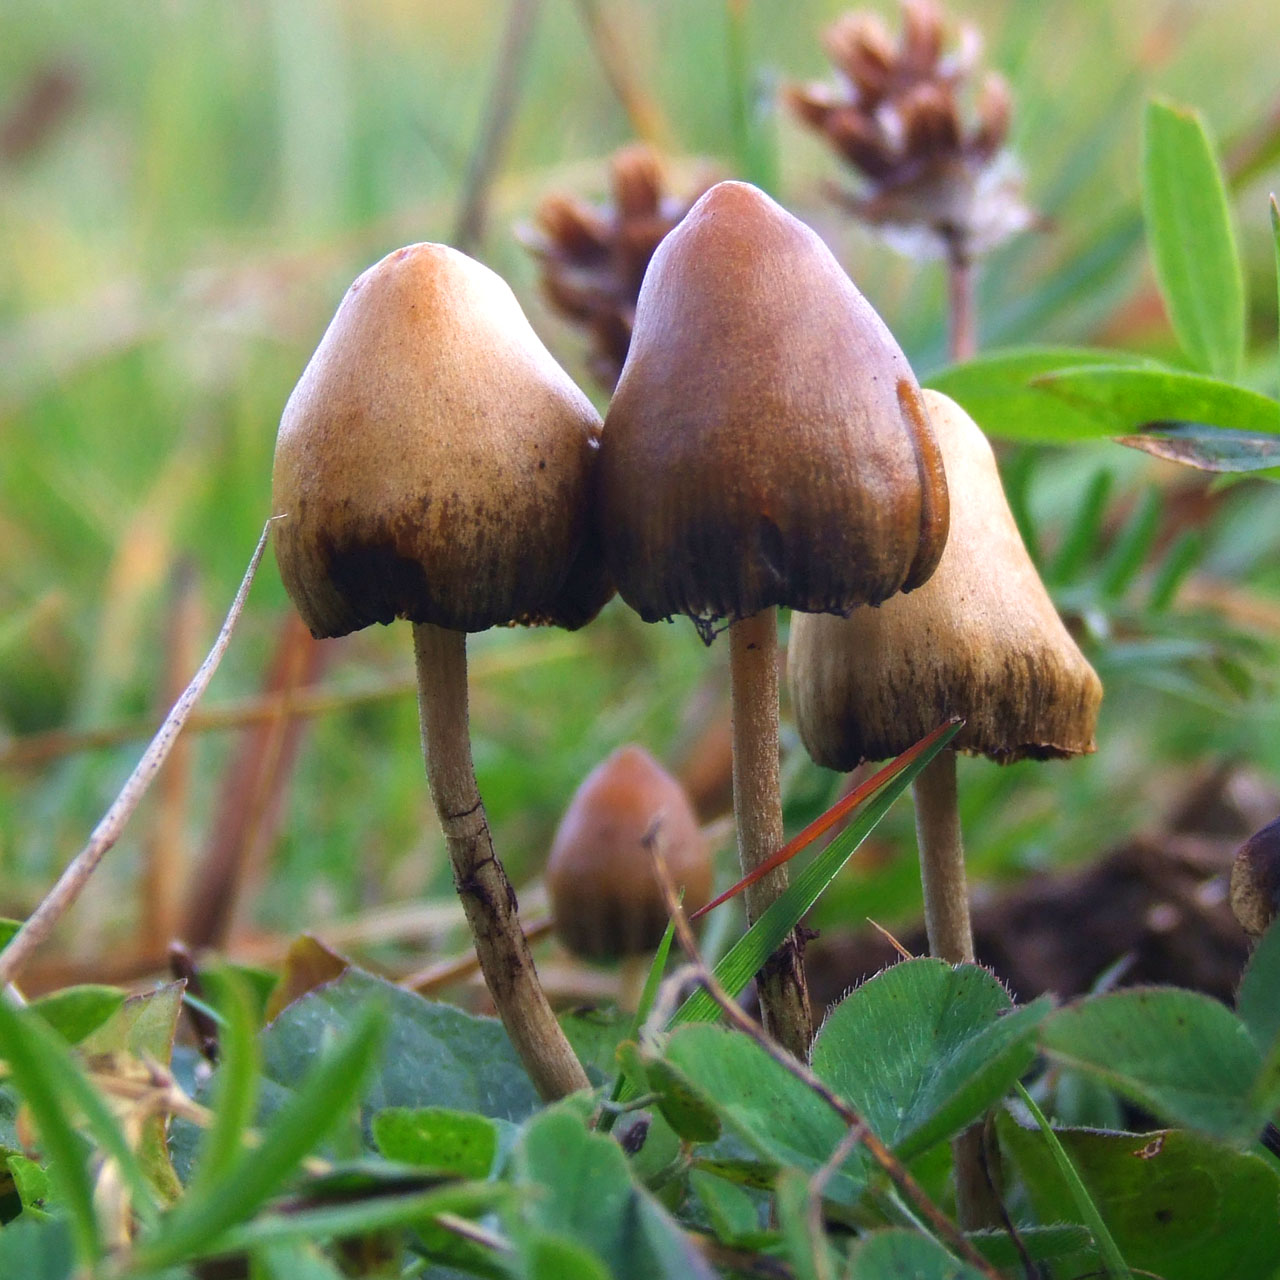 Psilocybin mushrooms. Psilocybin is a naturally occurring psychedelic compound.